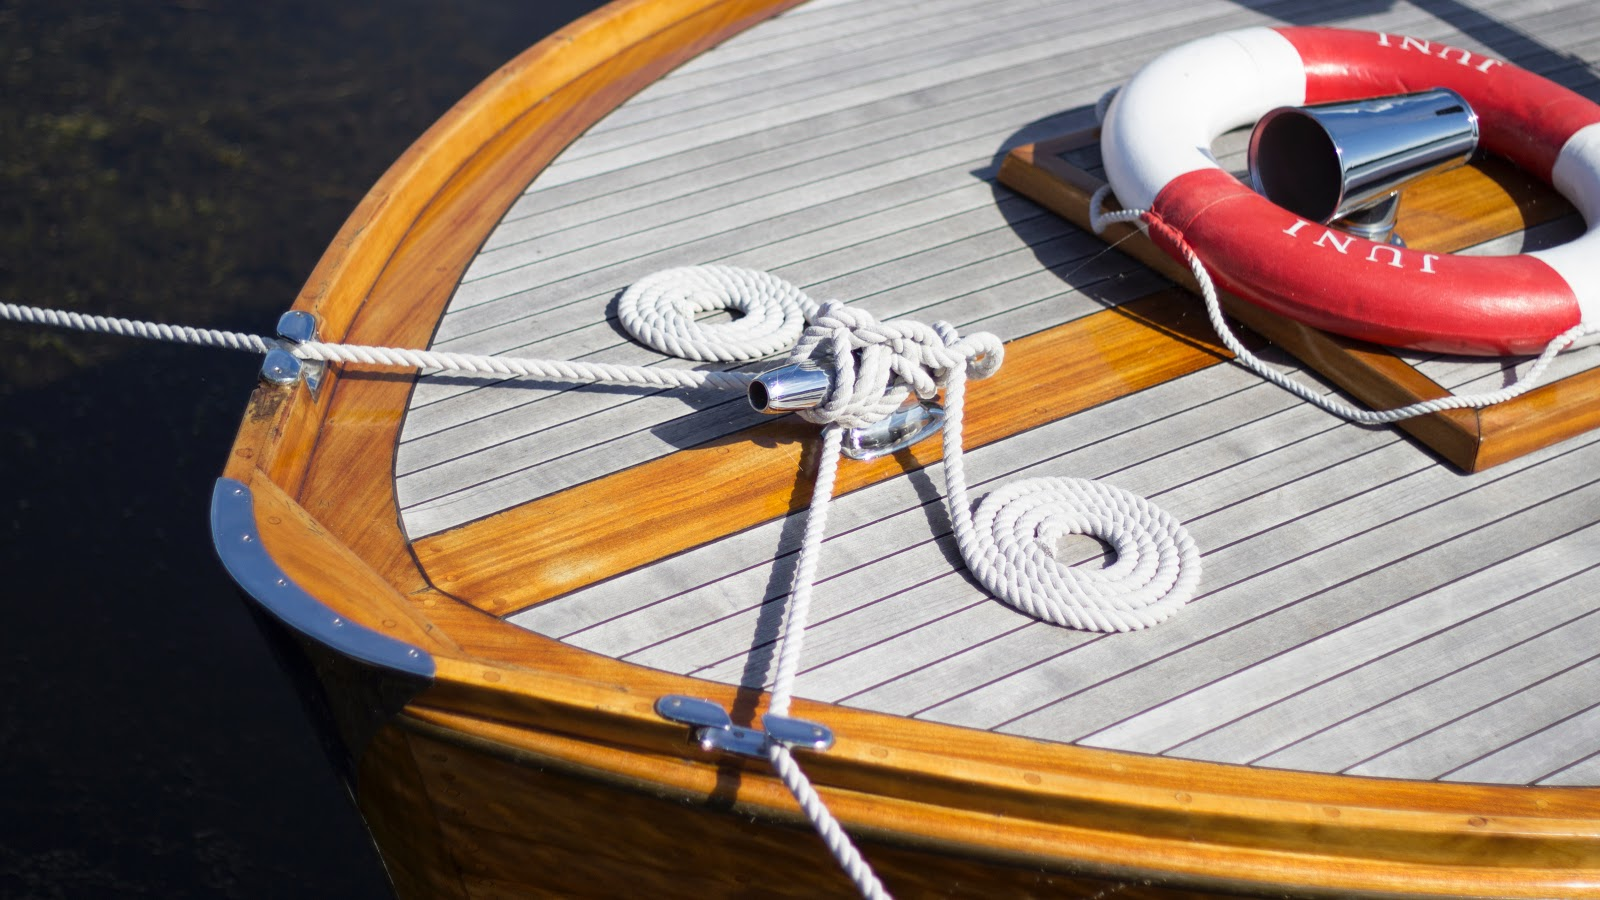 Overhead of the bow of a boat